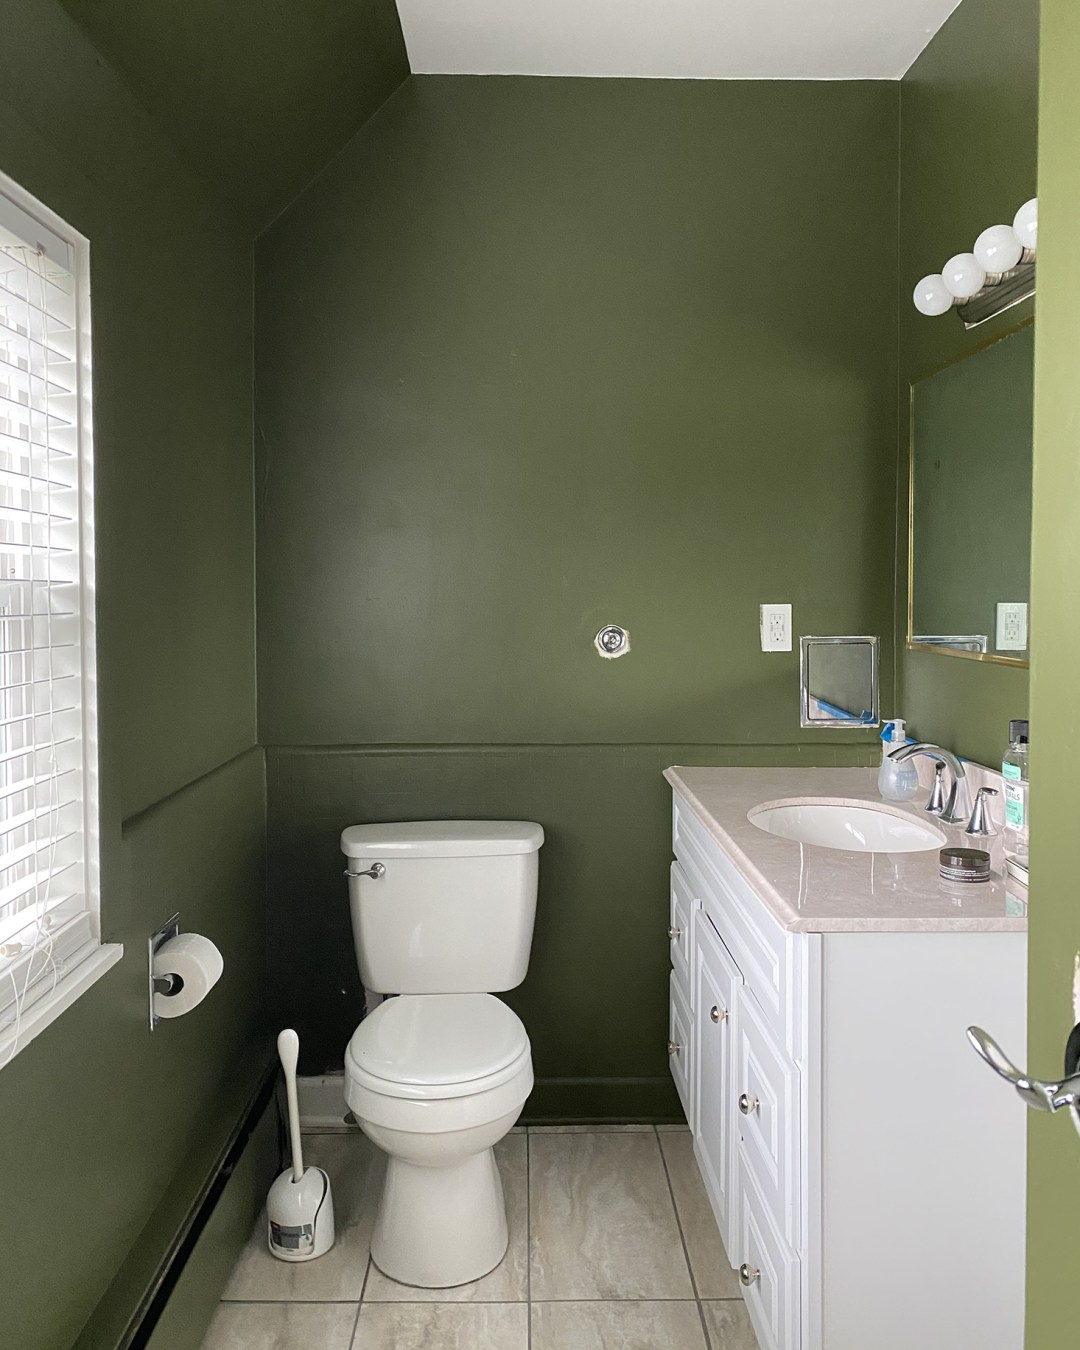 Bathroom painted Behr Russian Olive